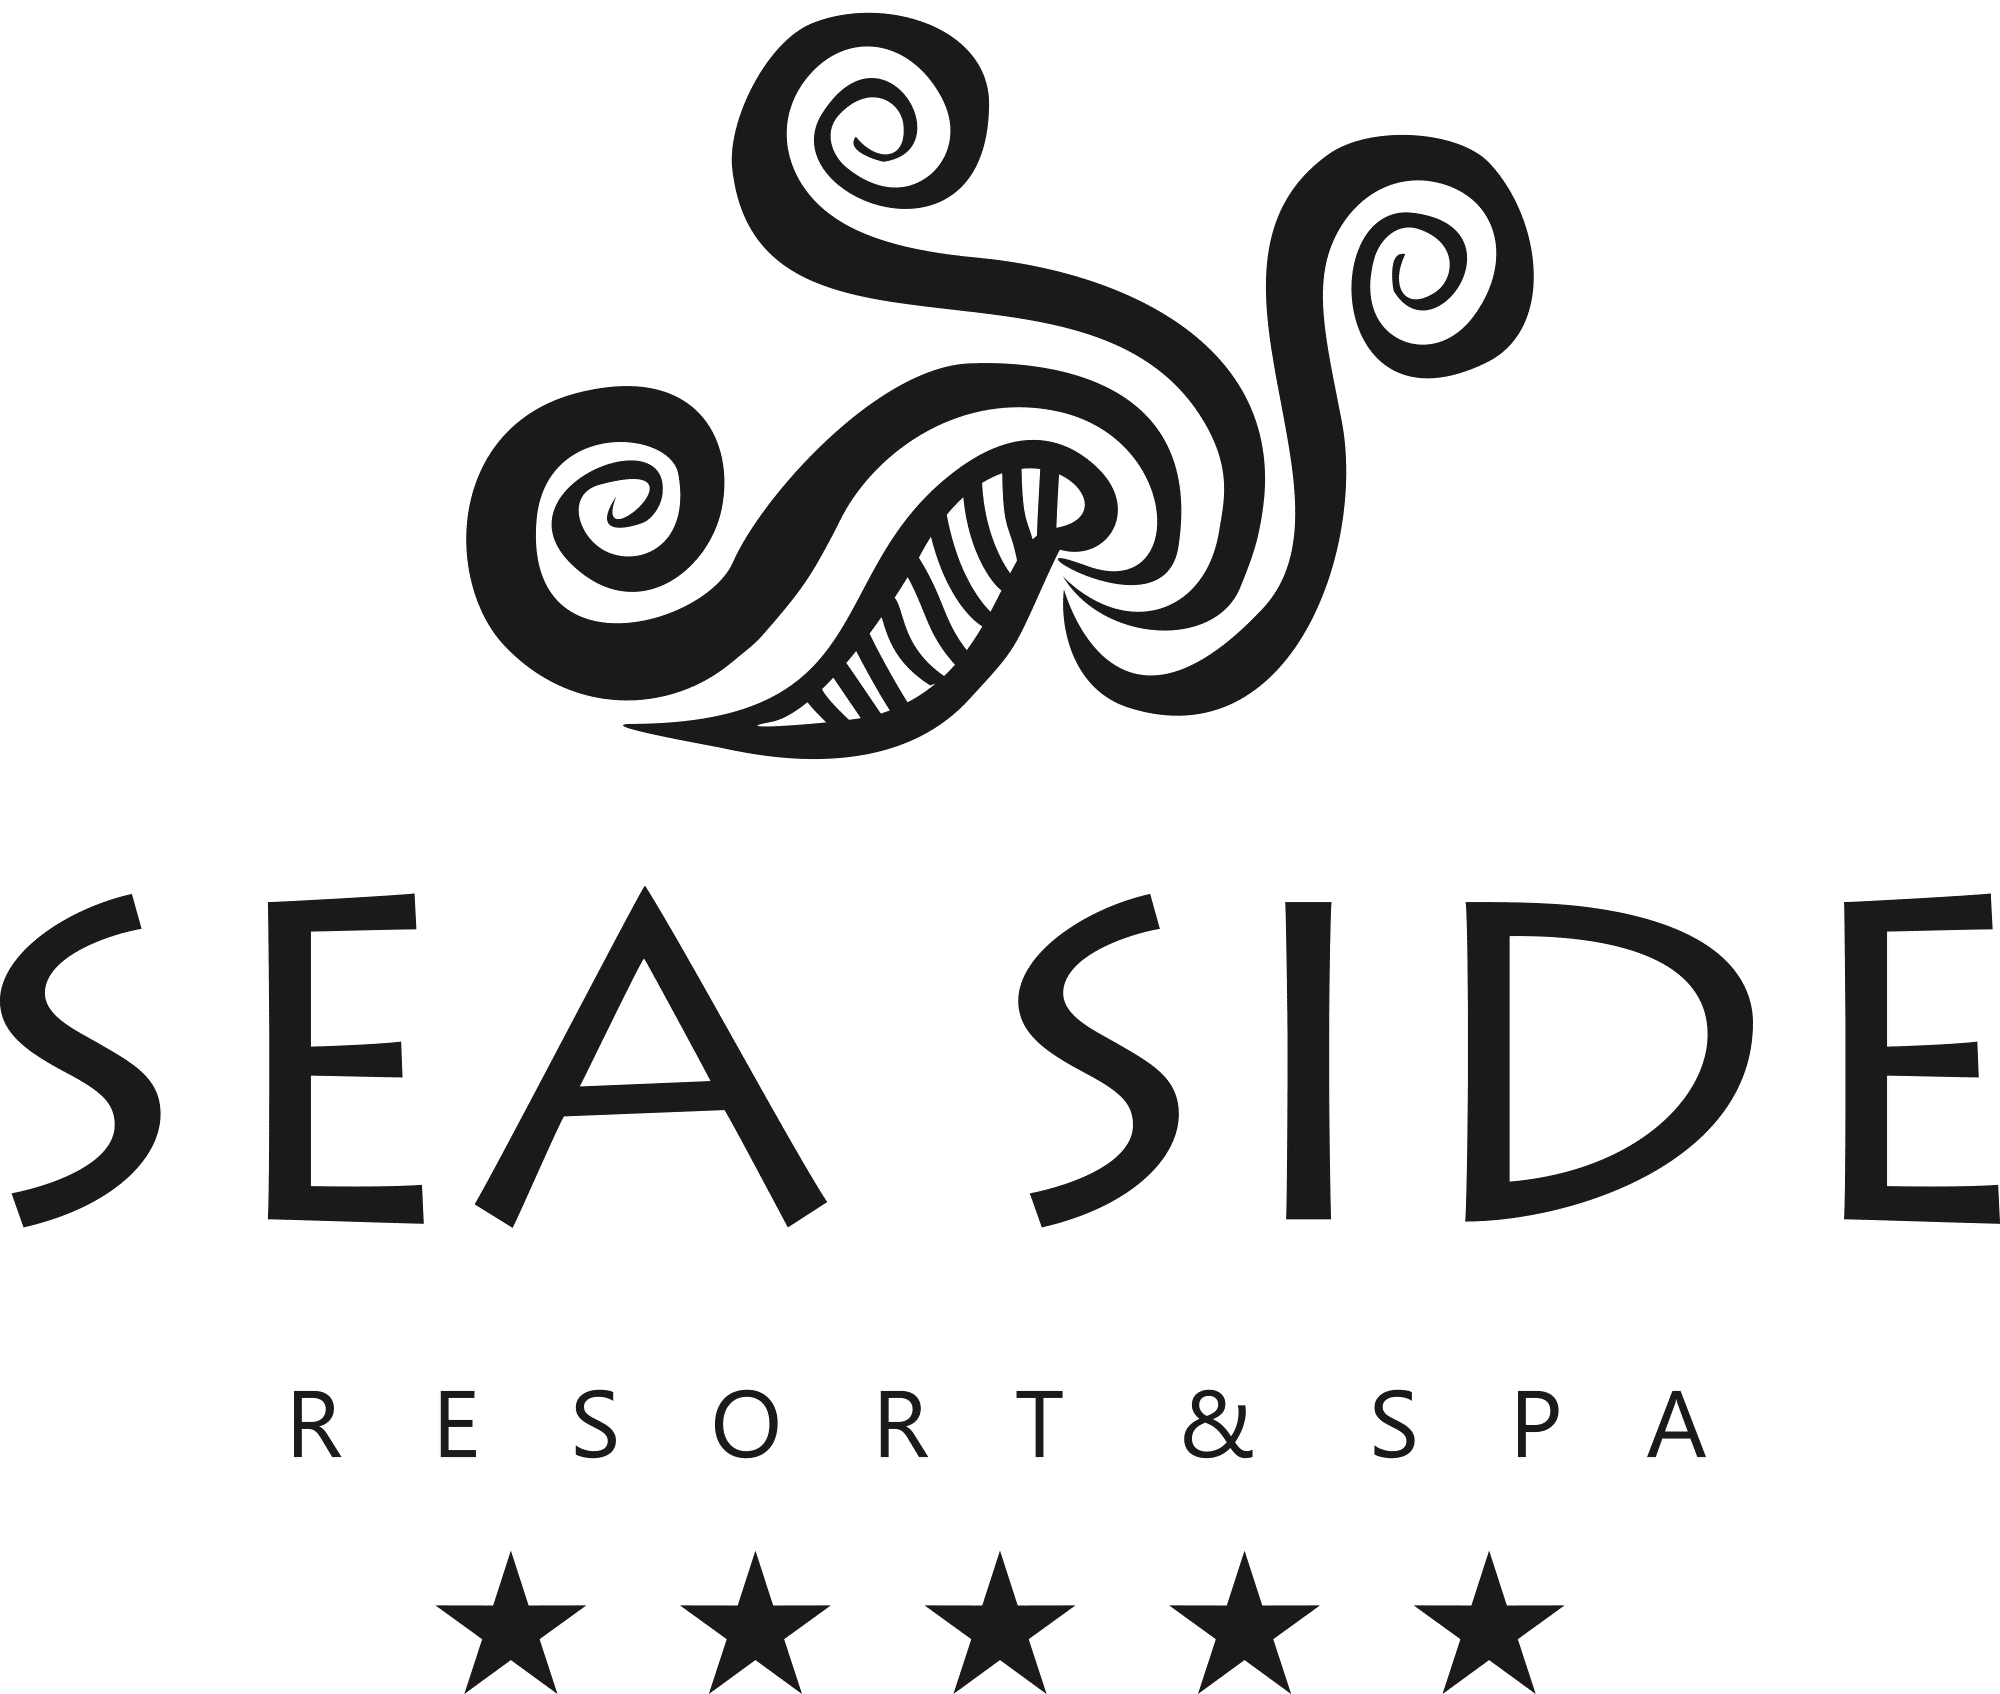 Sea Side Resort & Spa Logotype (Monochrome)